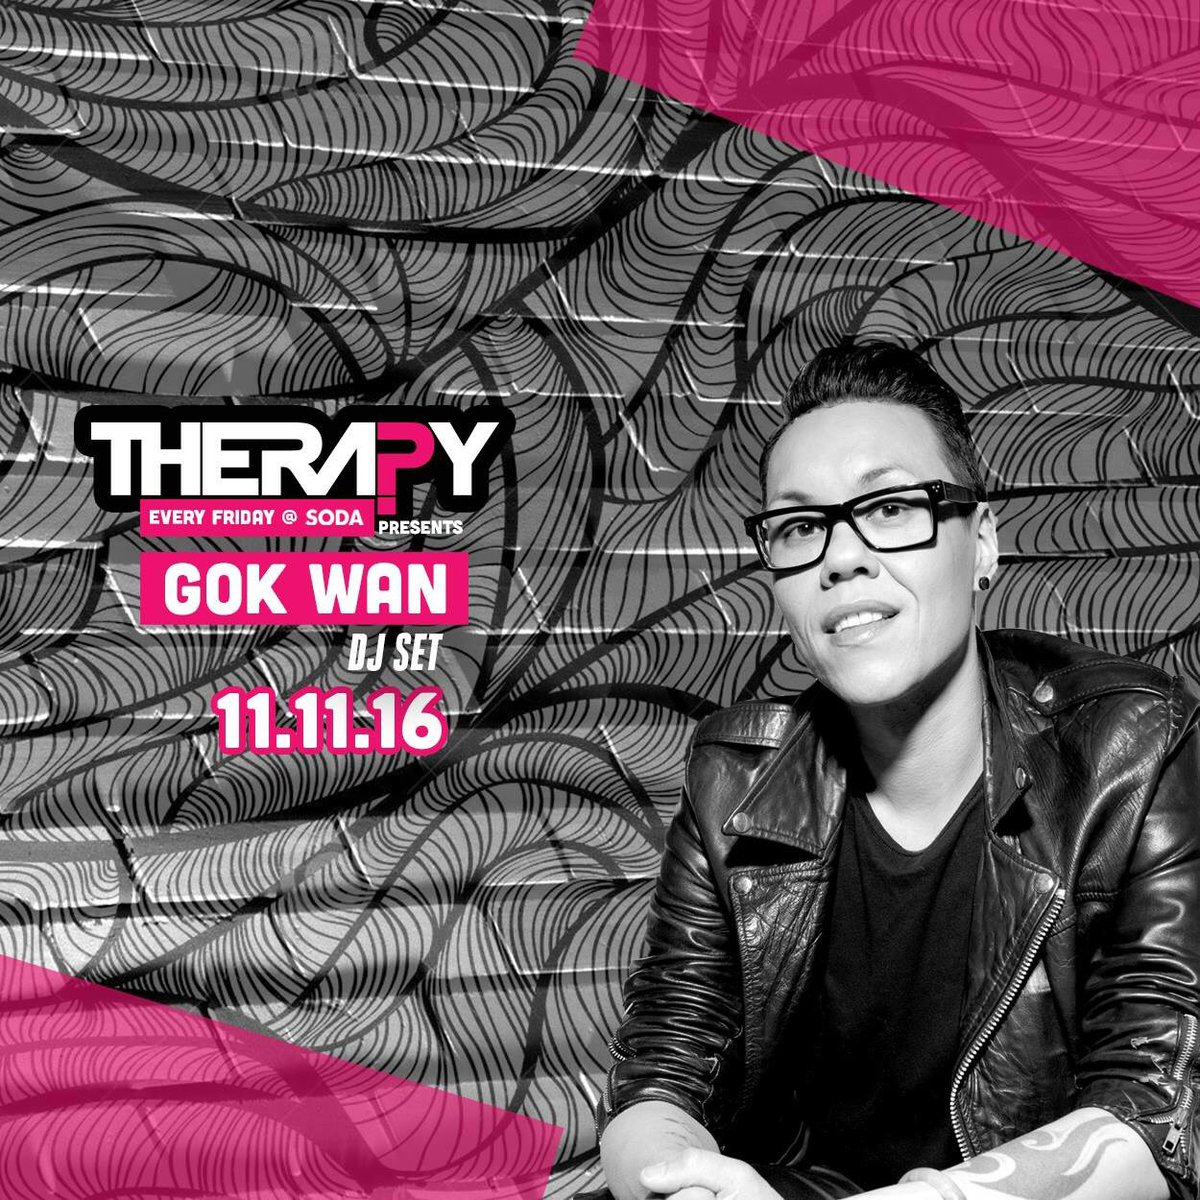 don't forget @therealgokwan will be at @TherapyCardiff @SodabarOfficial 11.11.16